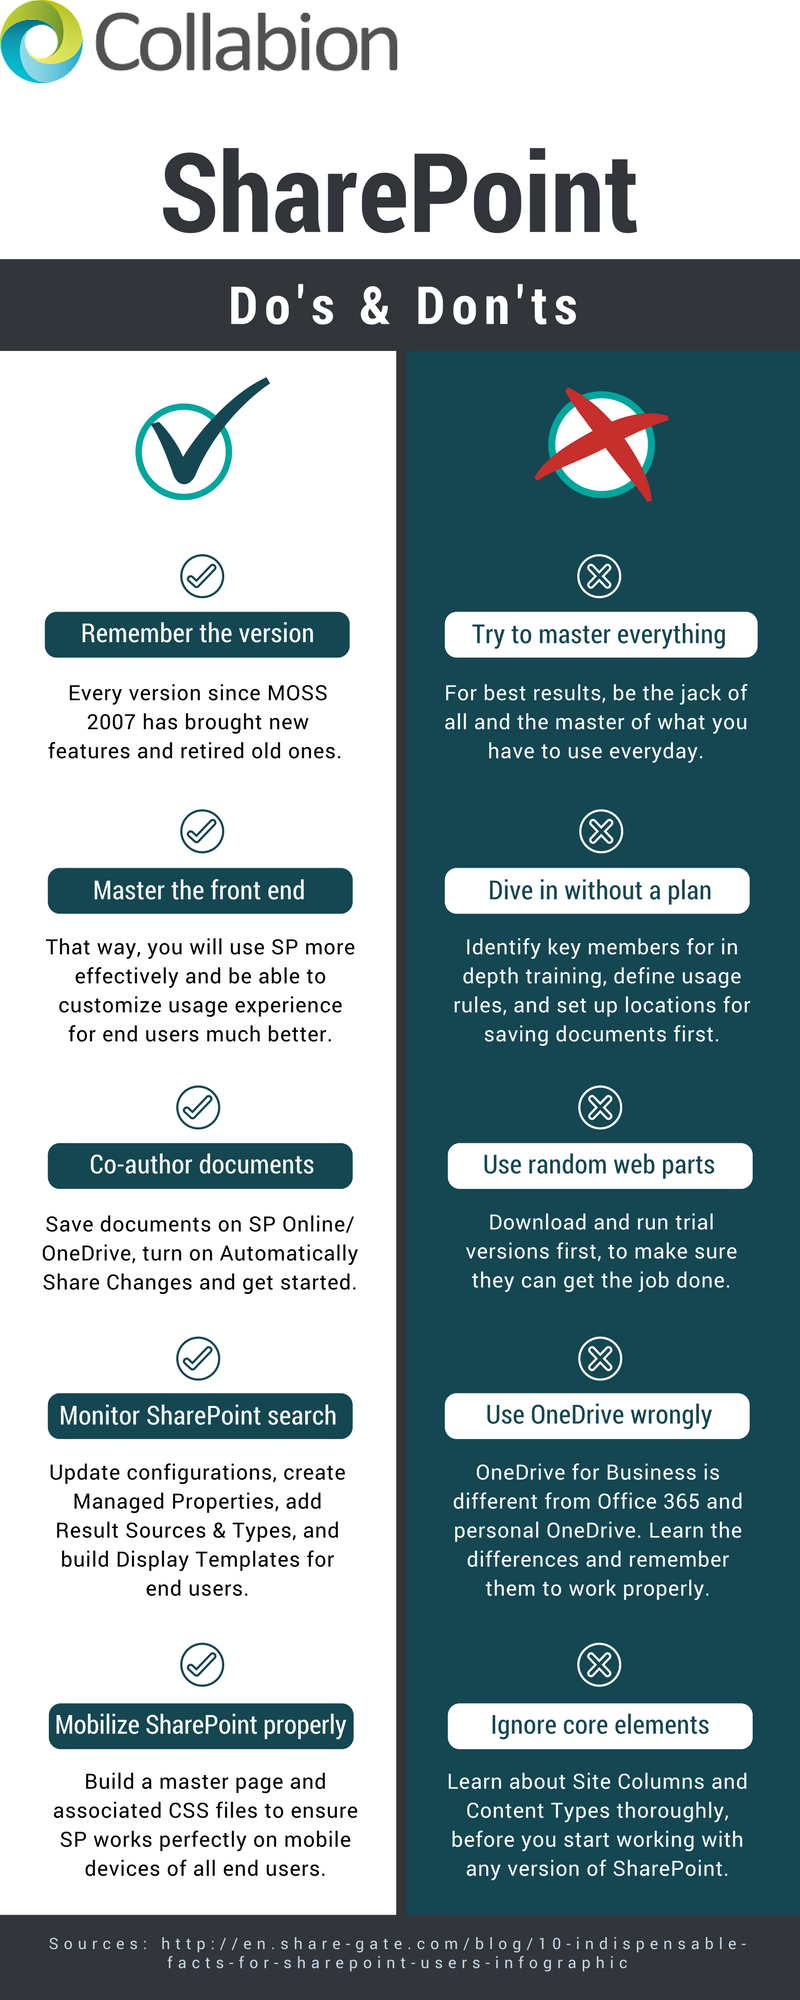 5 Do's and 5 Don'ts for SharePoint - Infographic